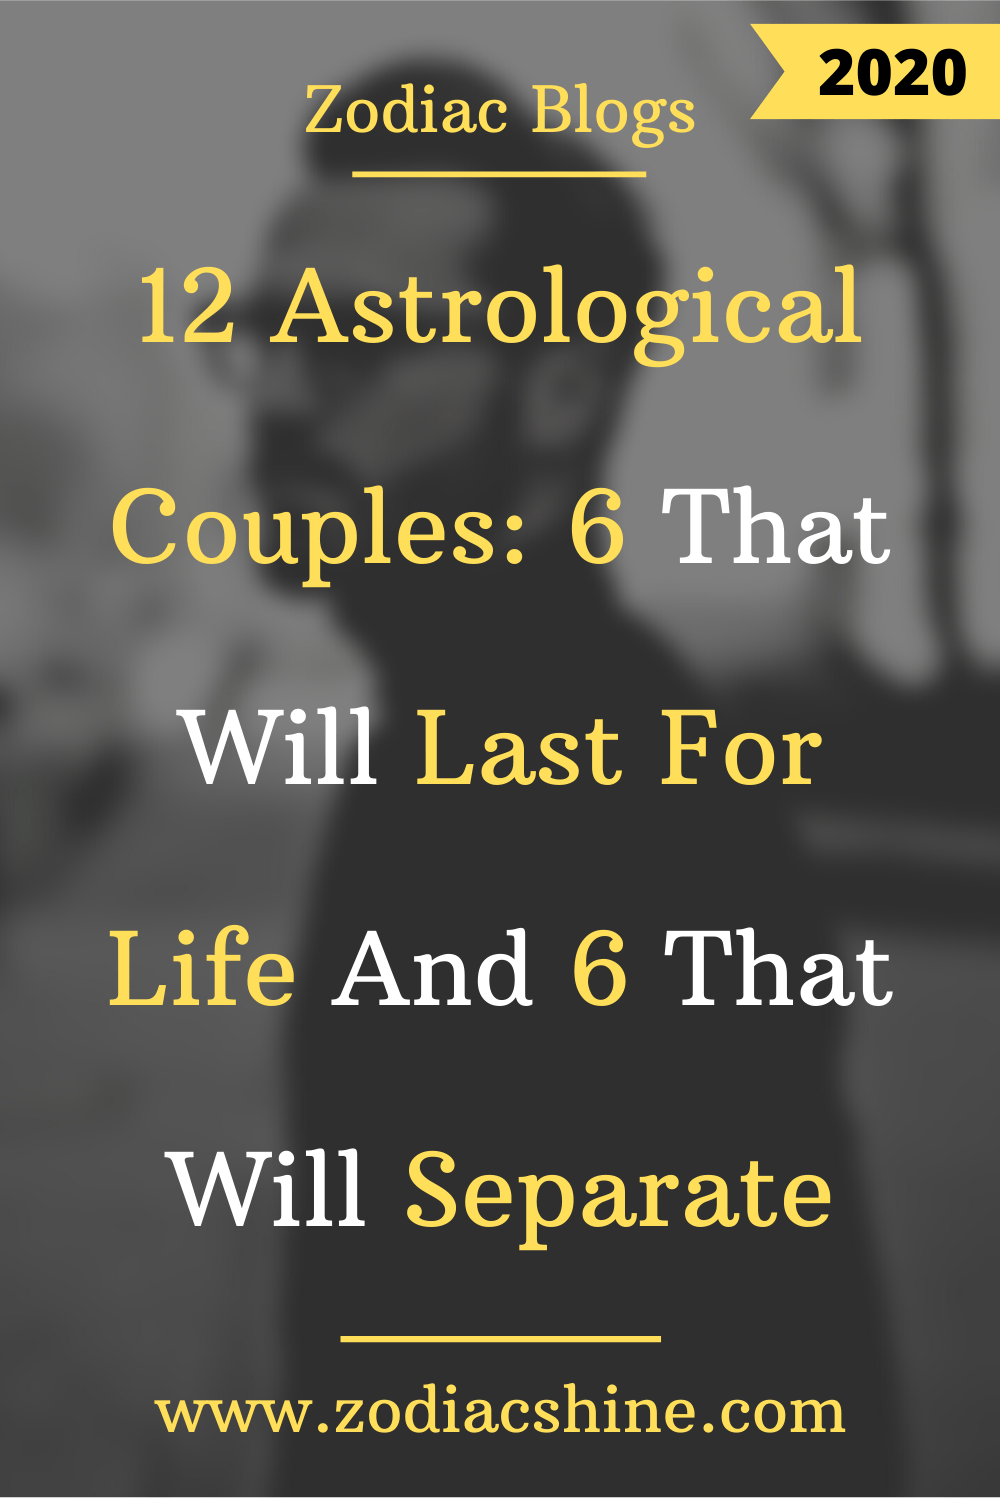 12 Astrological Couples: 6 That Will Last For Life And 6